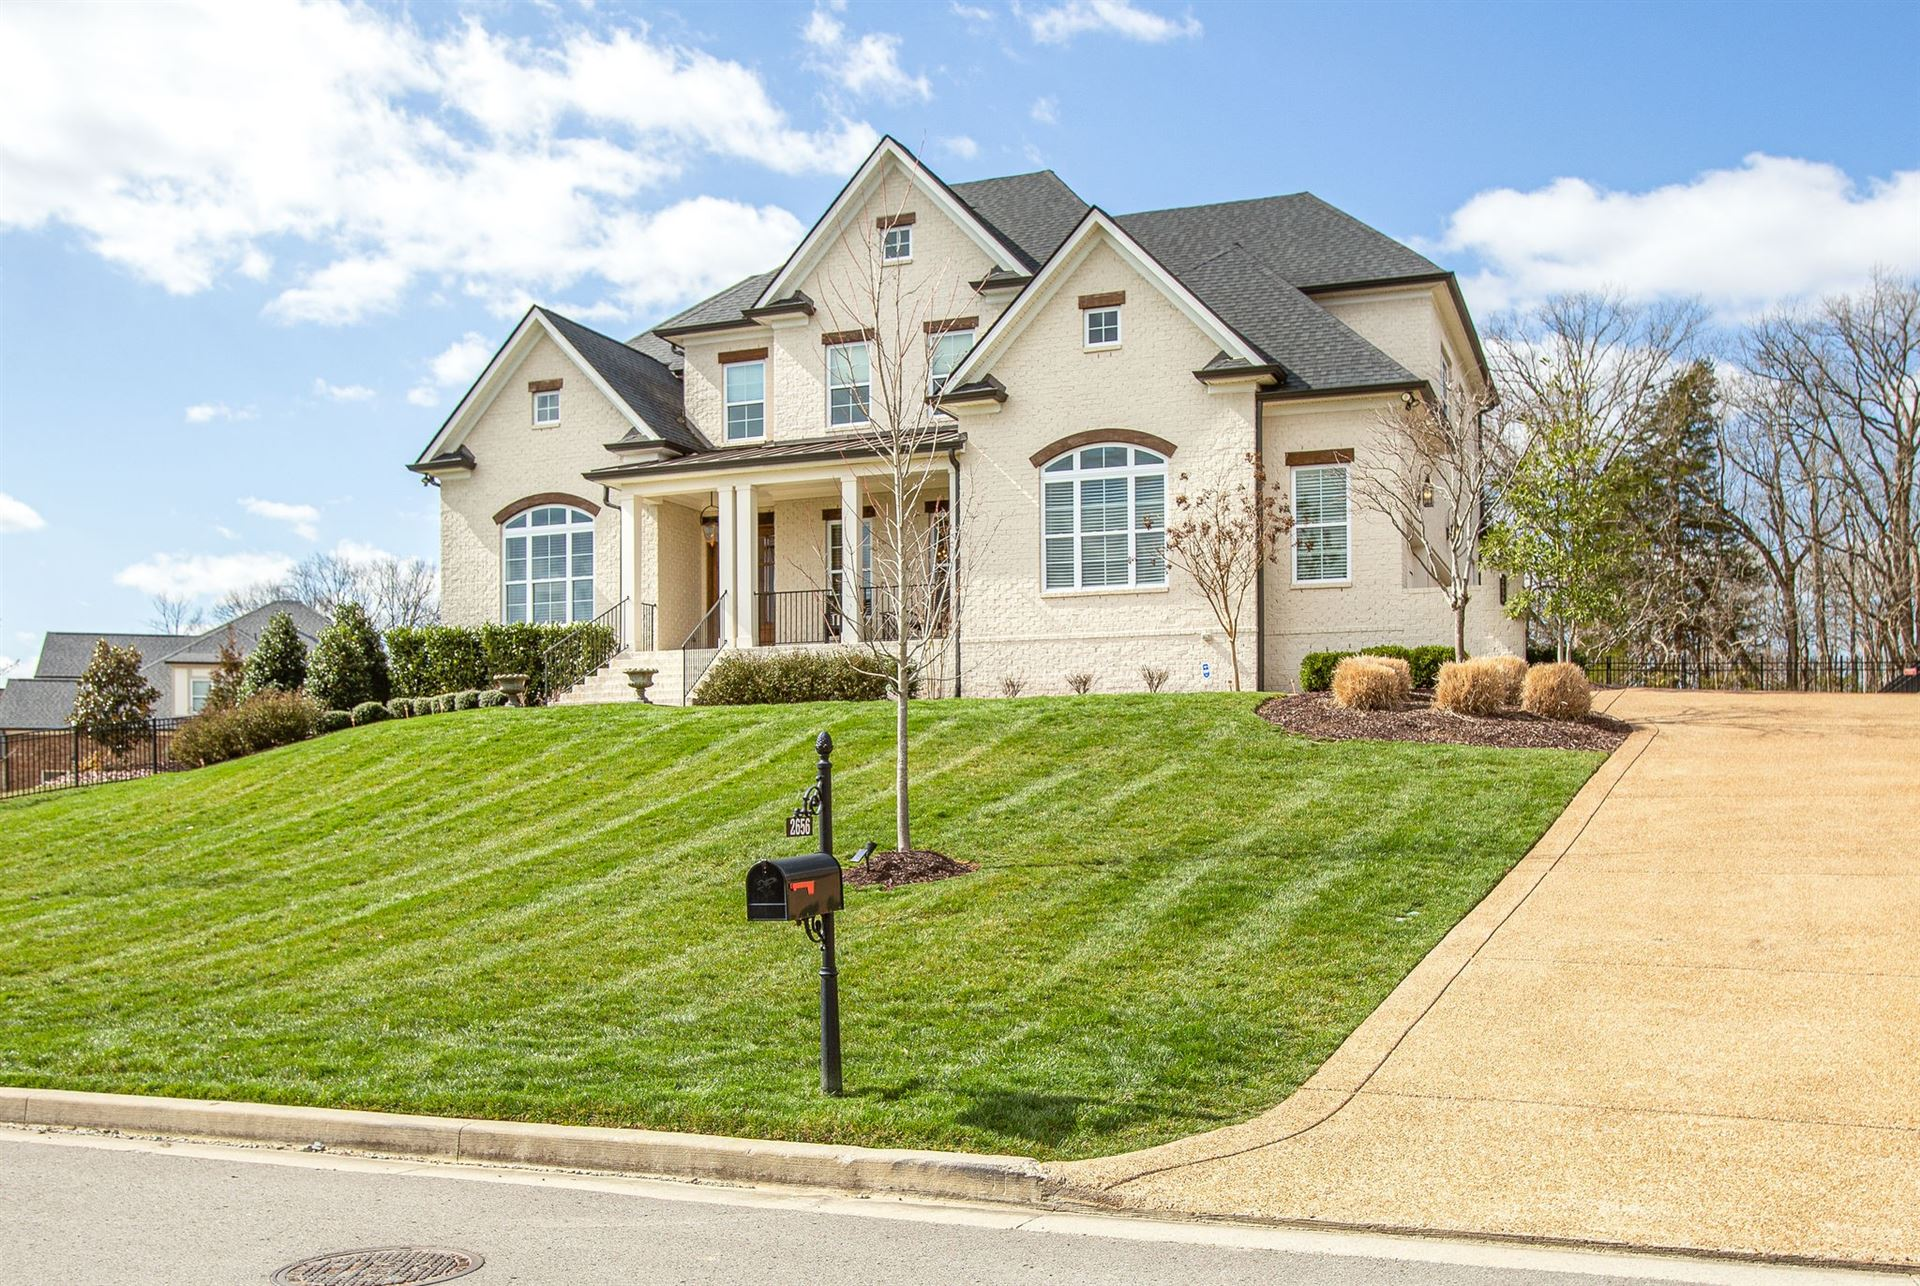 Photo of 2656 Benington Pl, Nolensville, TN 37135 (MLS # 2135540)